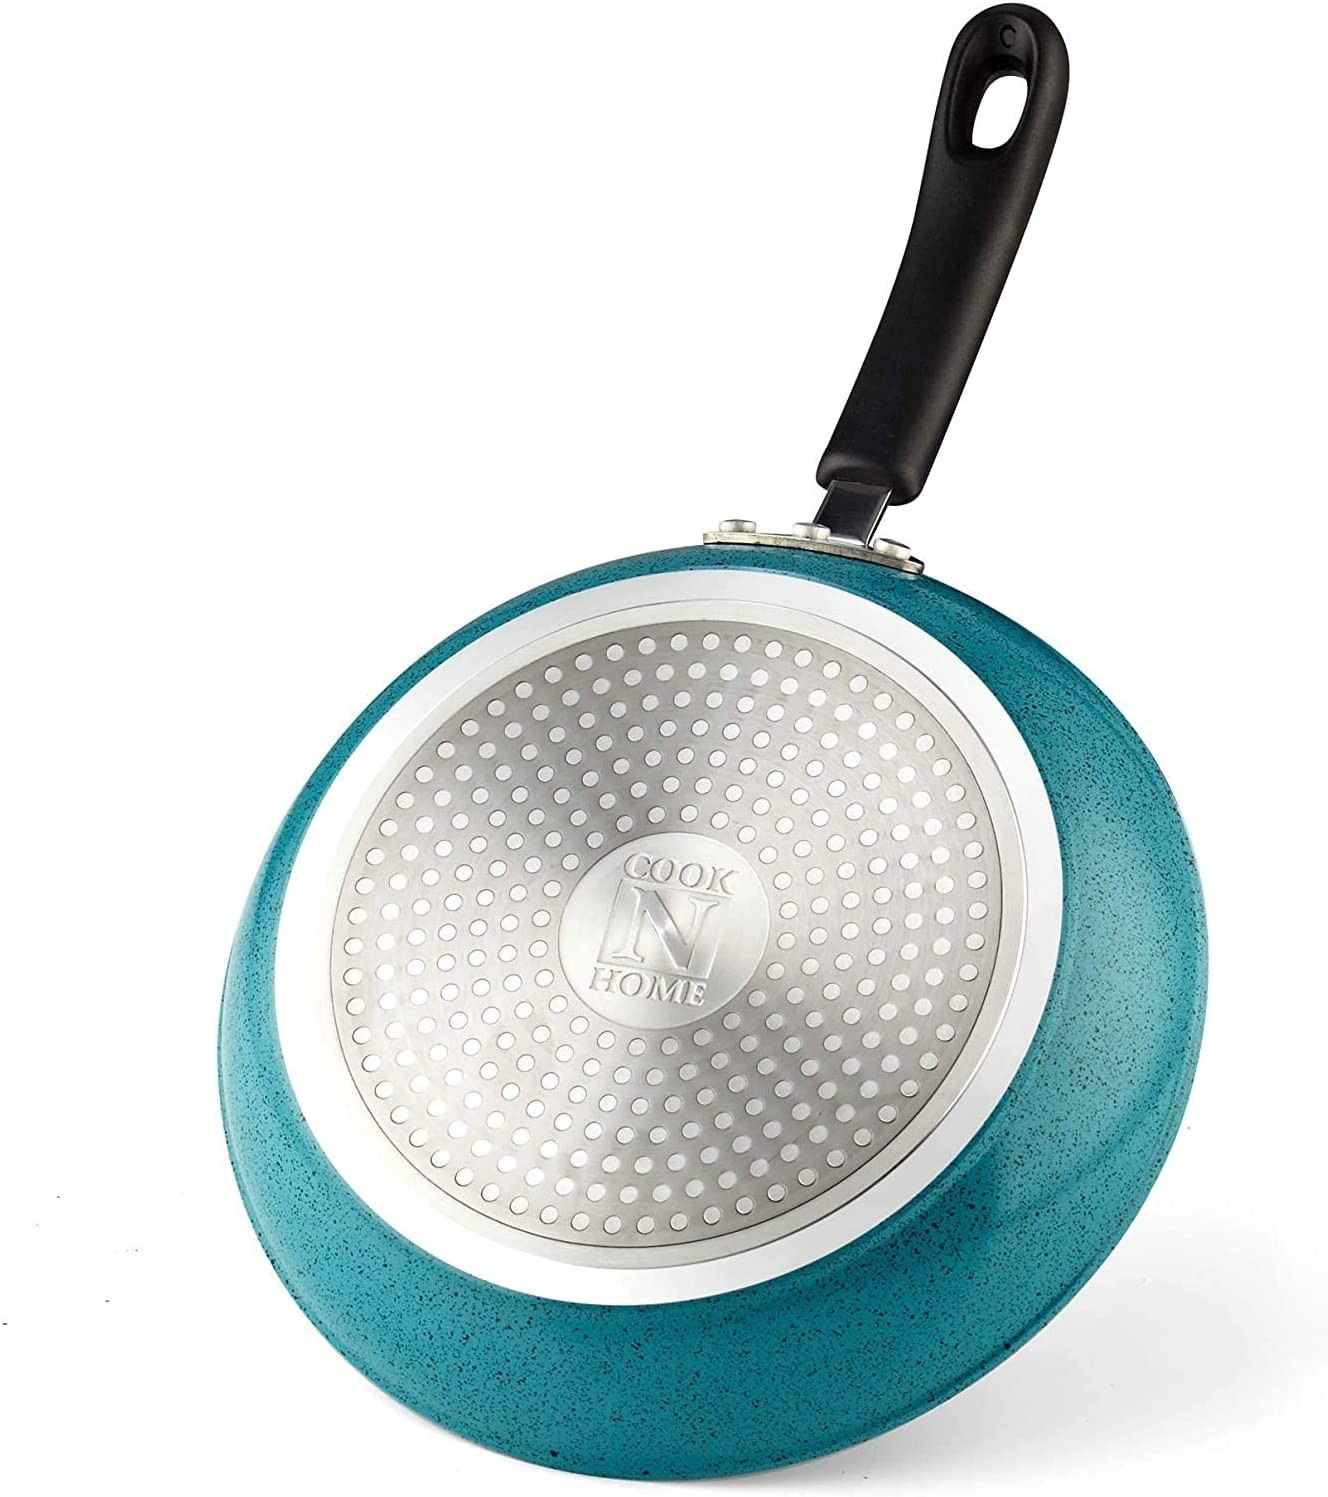 Cook N Home 9.5-Inch Saute Skillet with Nonstick Coating, Induction Compatible, Turquoise (02620)